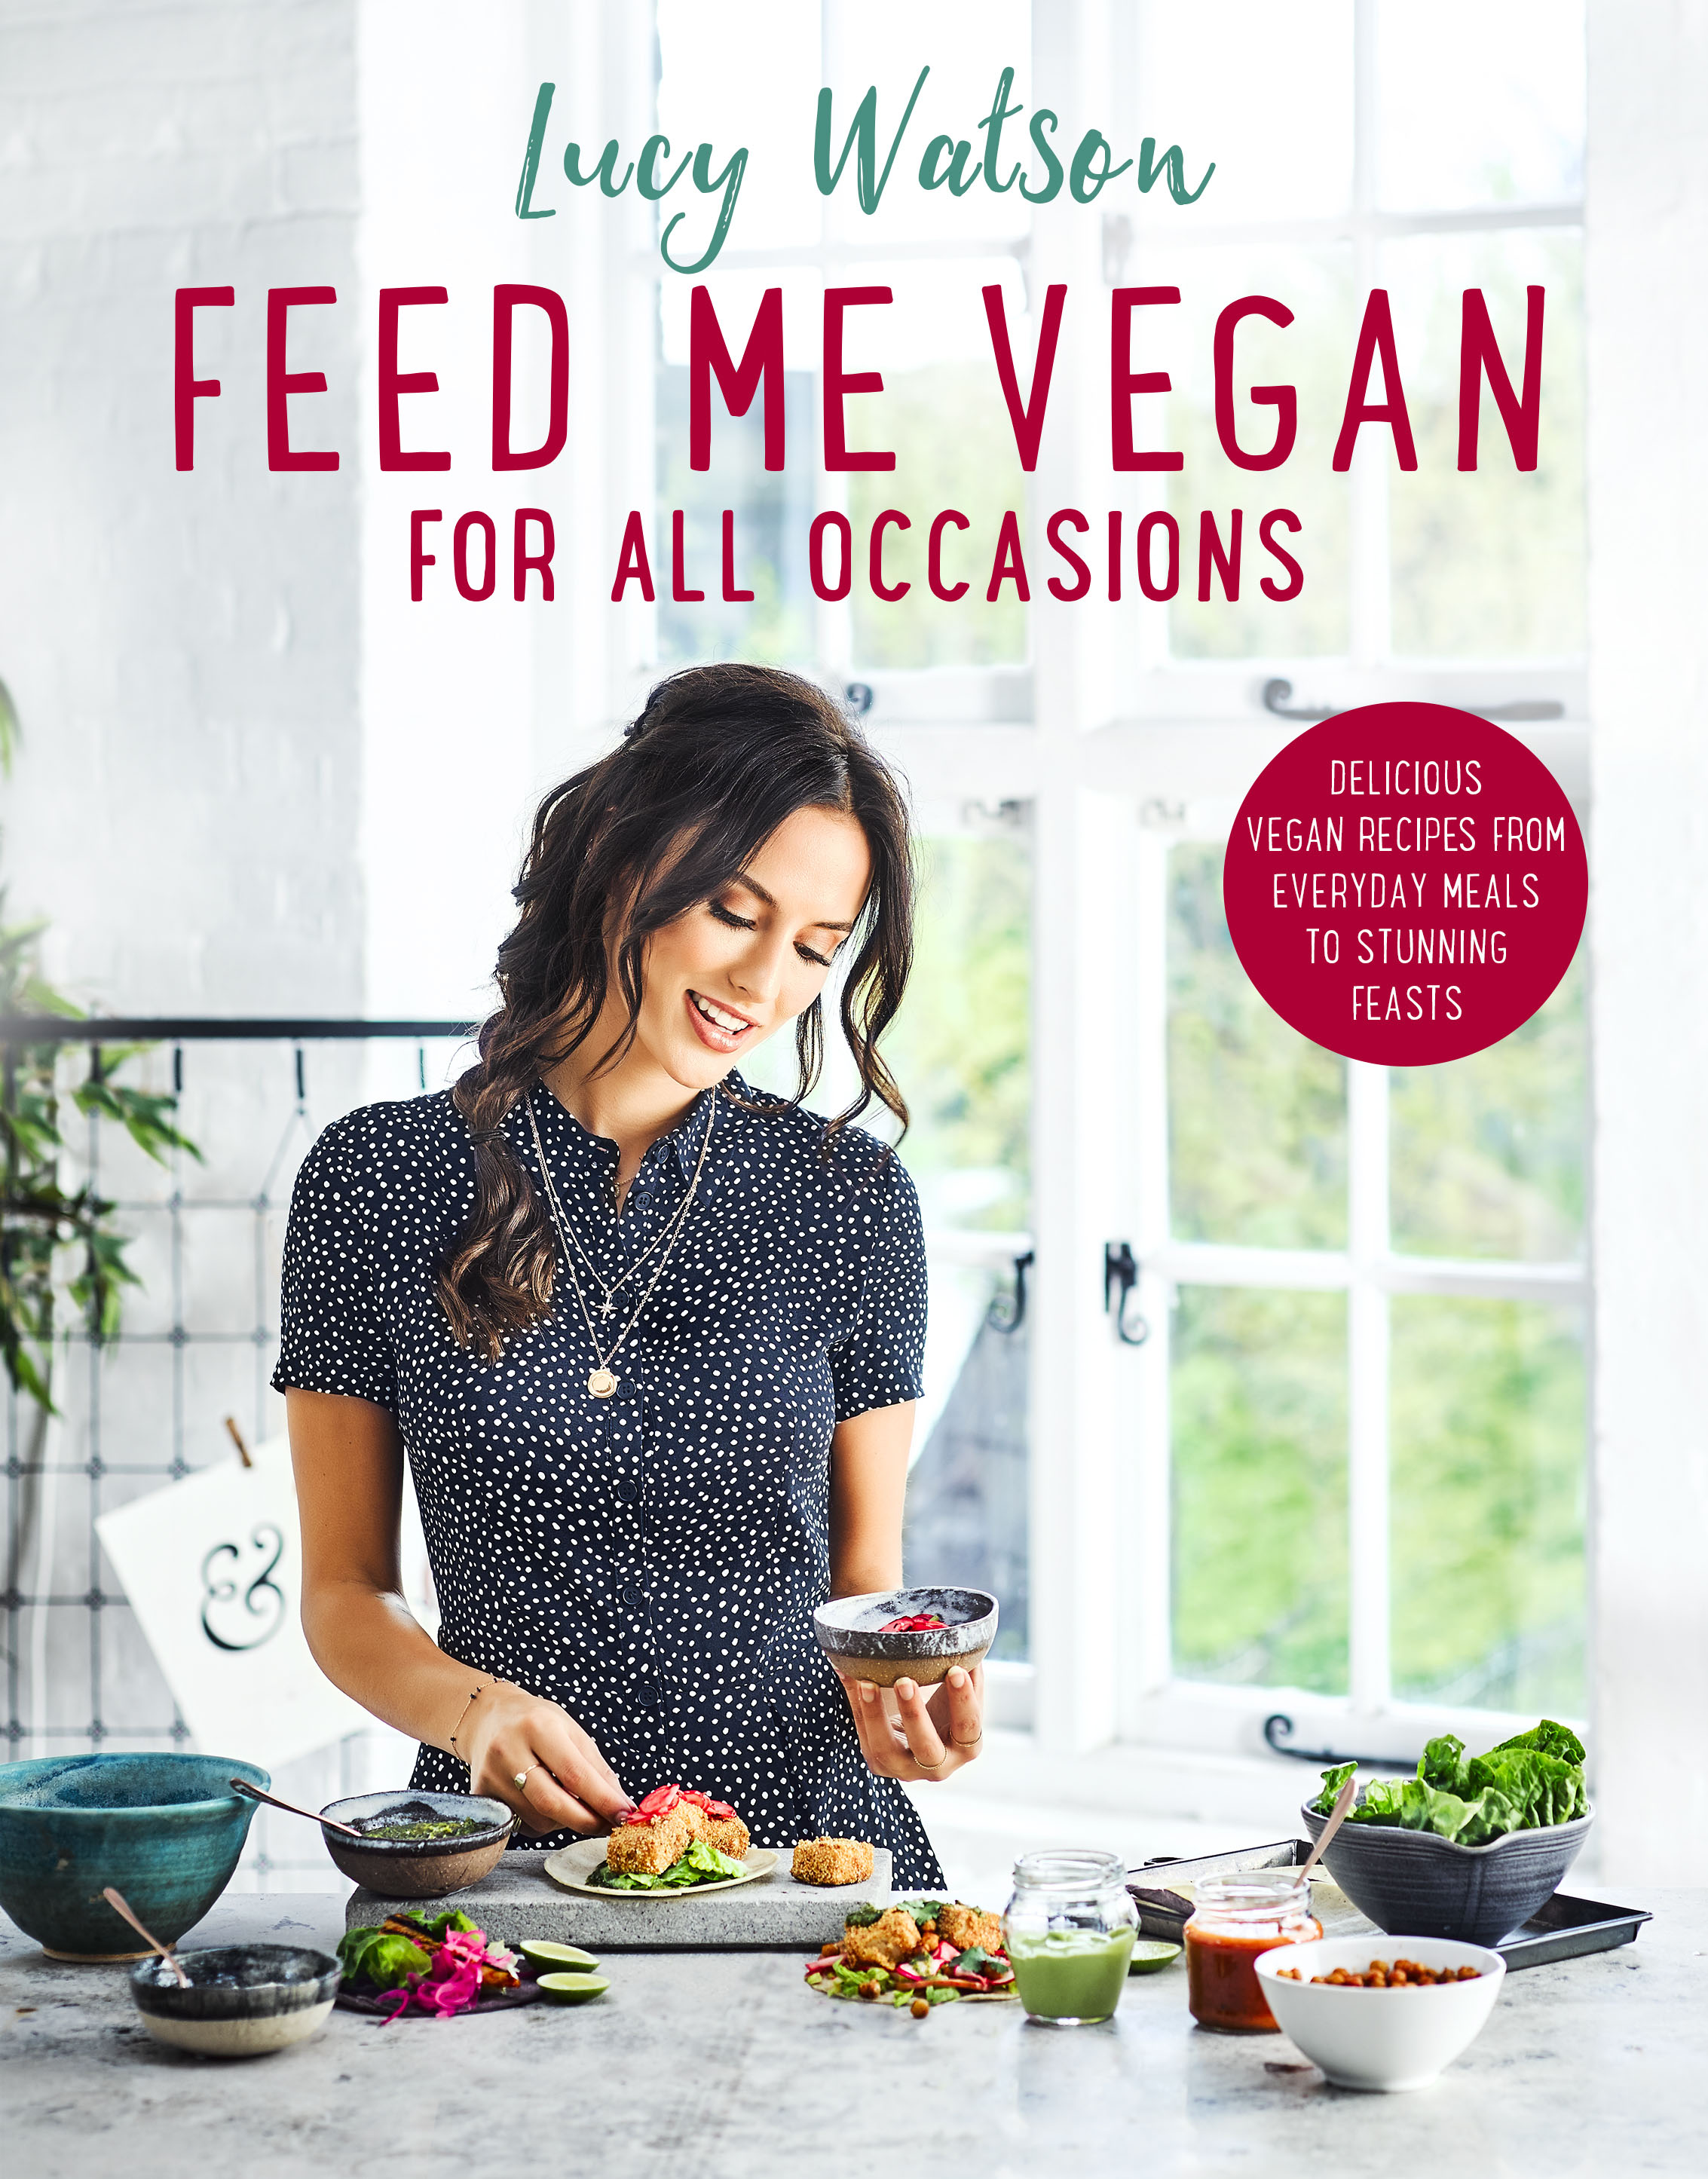 Lucy Watson Feed Me Vegan For All Occasions Cover